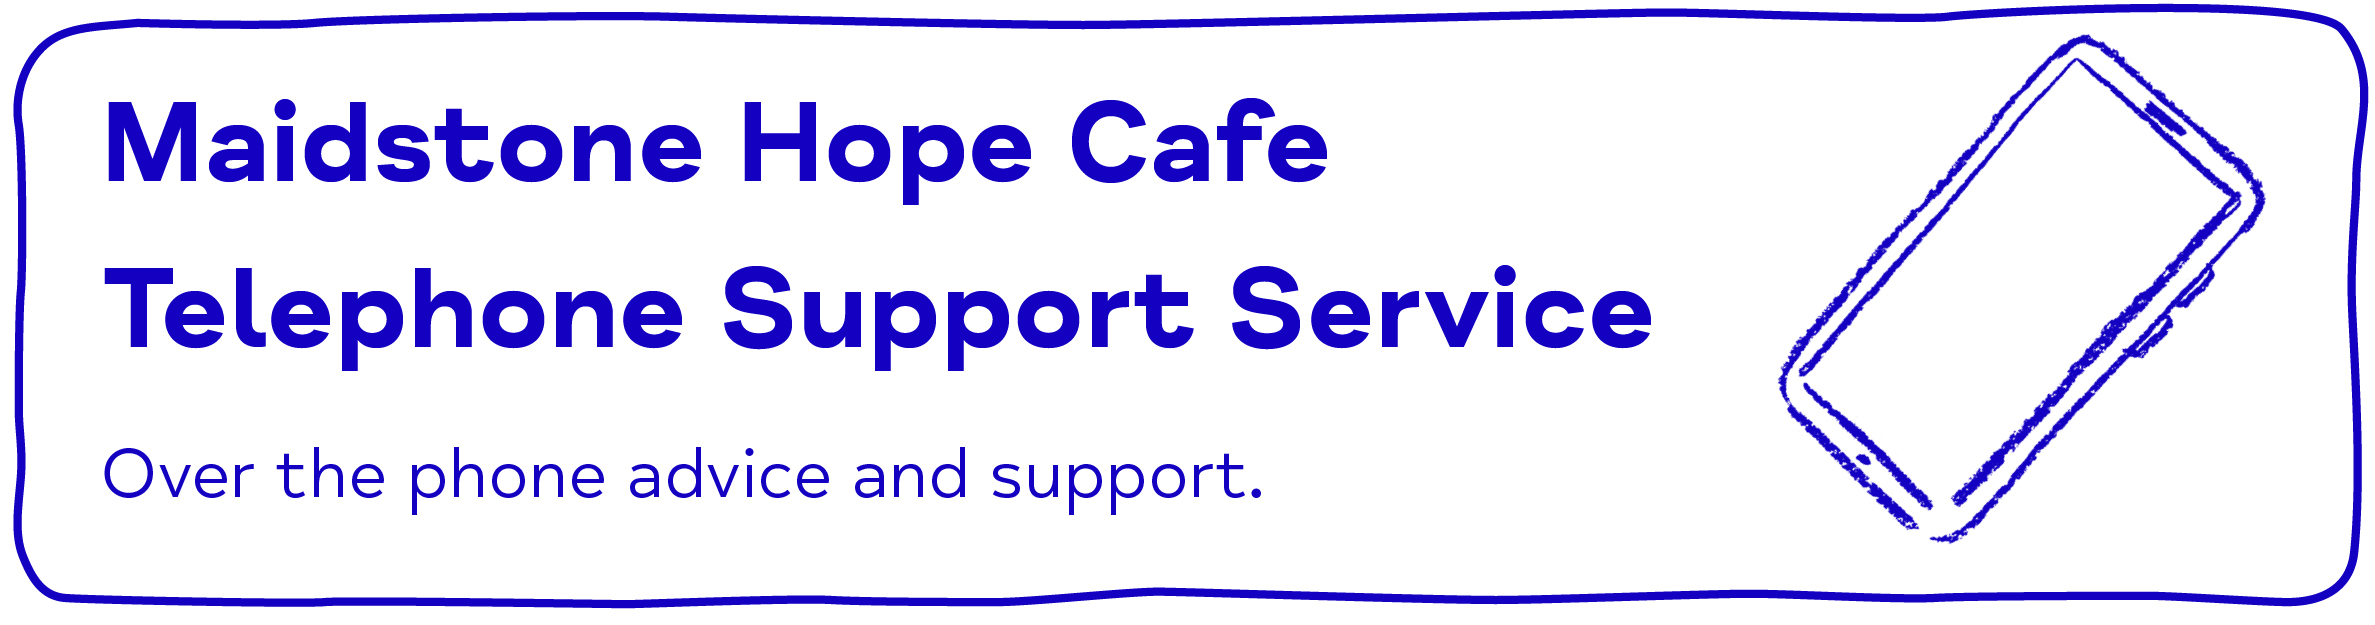 Maidstone Hope Cafe Telephone Support Service - Over the phone advice and support.